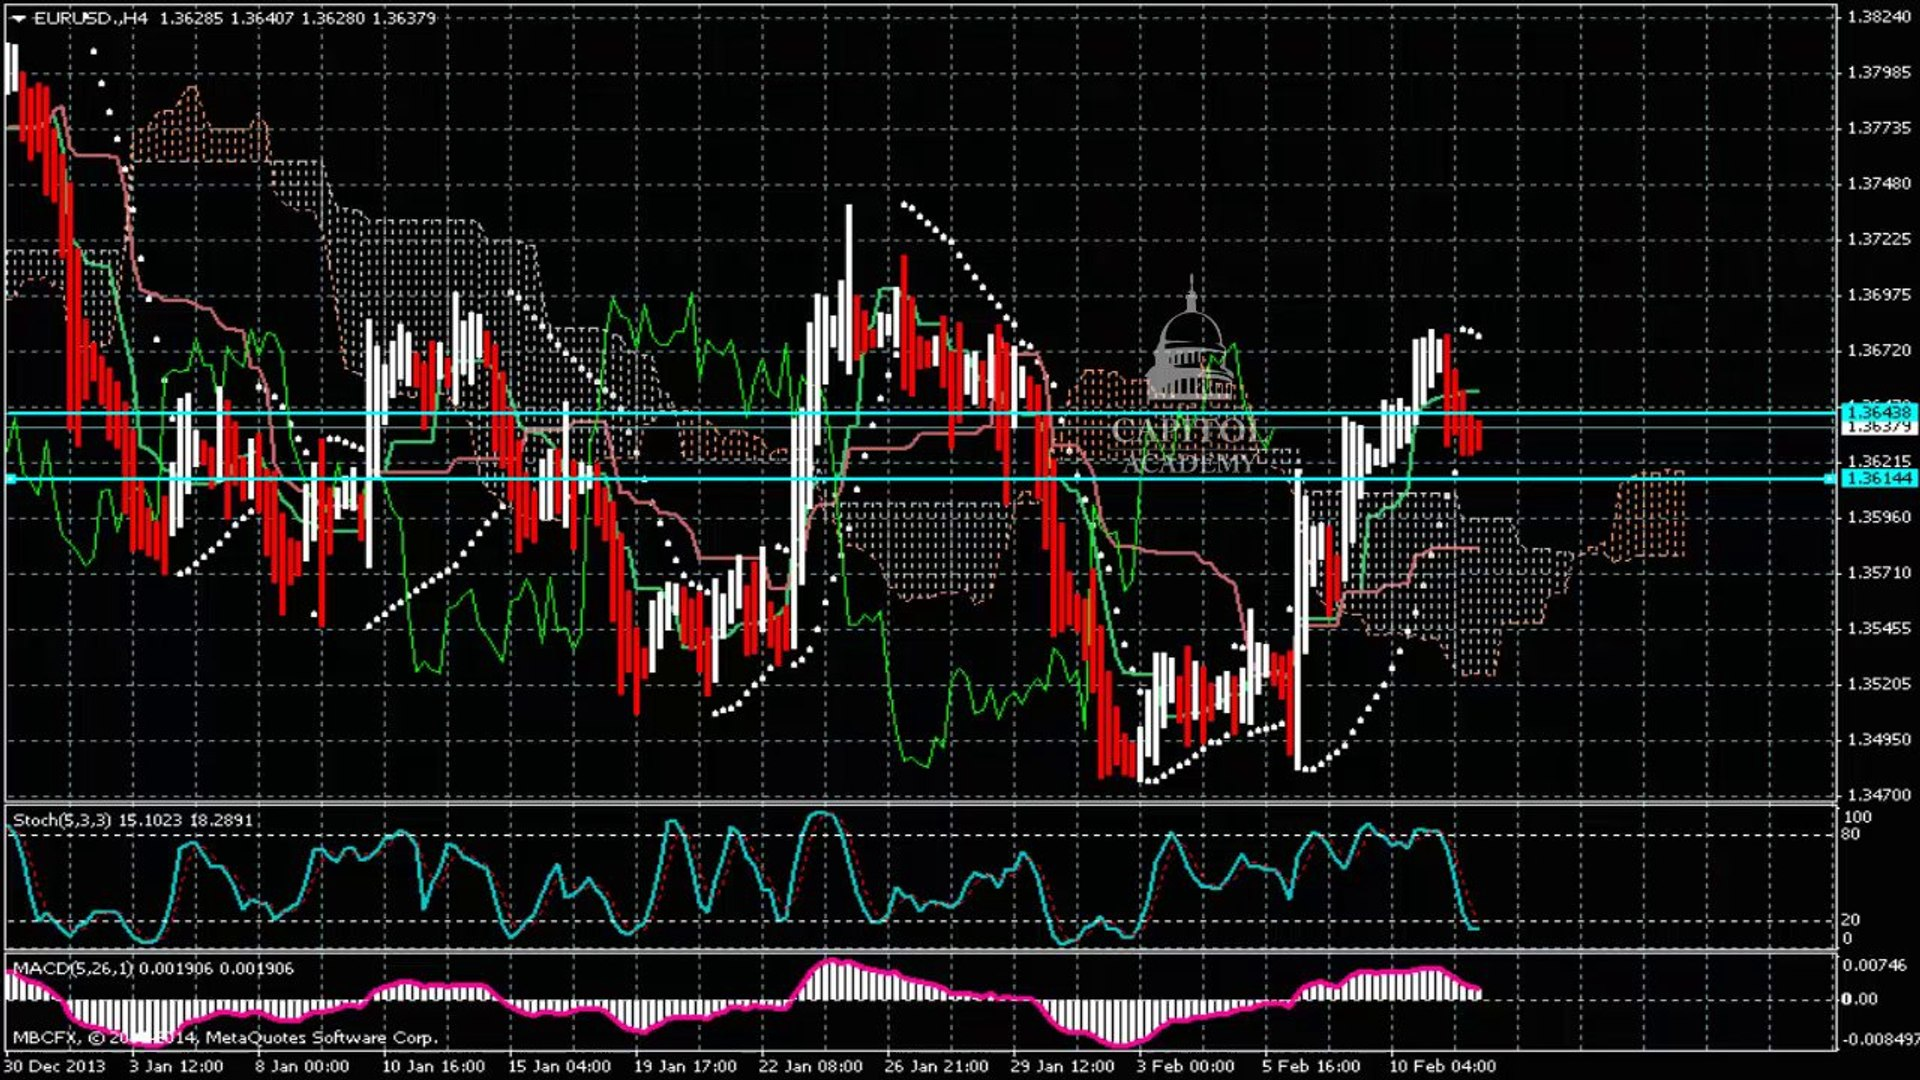 GBP/USD daily Forecast Analysis ahead of the BoE inflation report and Carney speech 02/12/2014